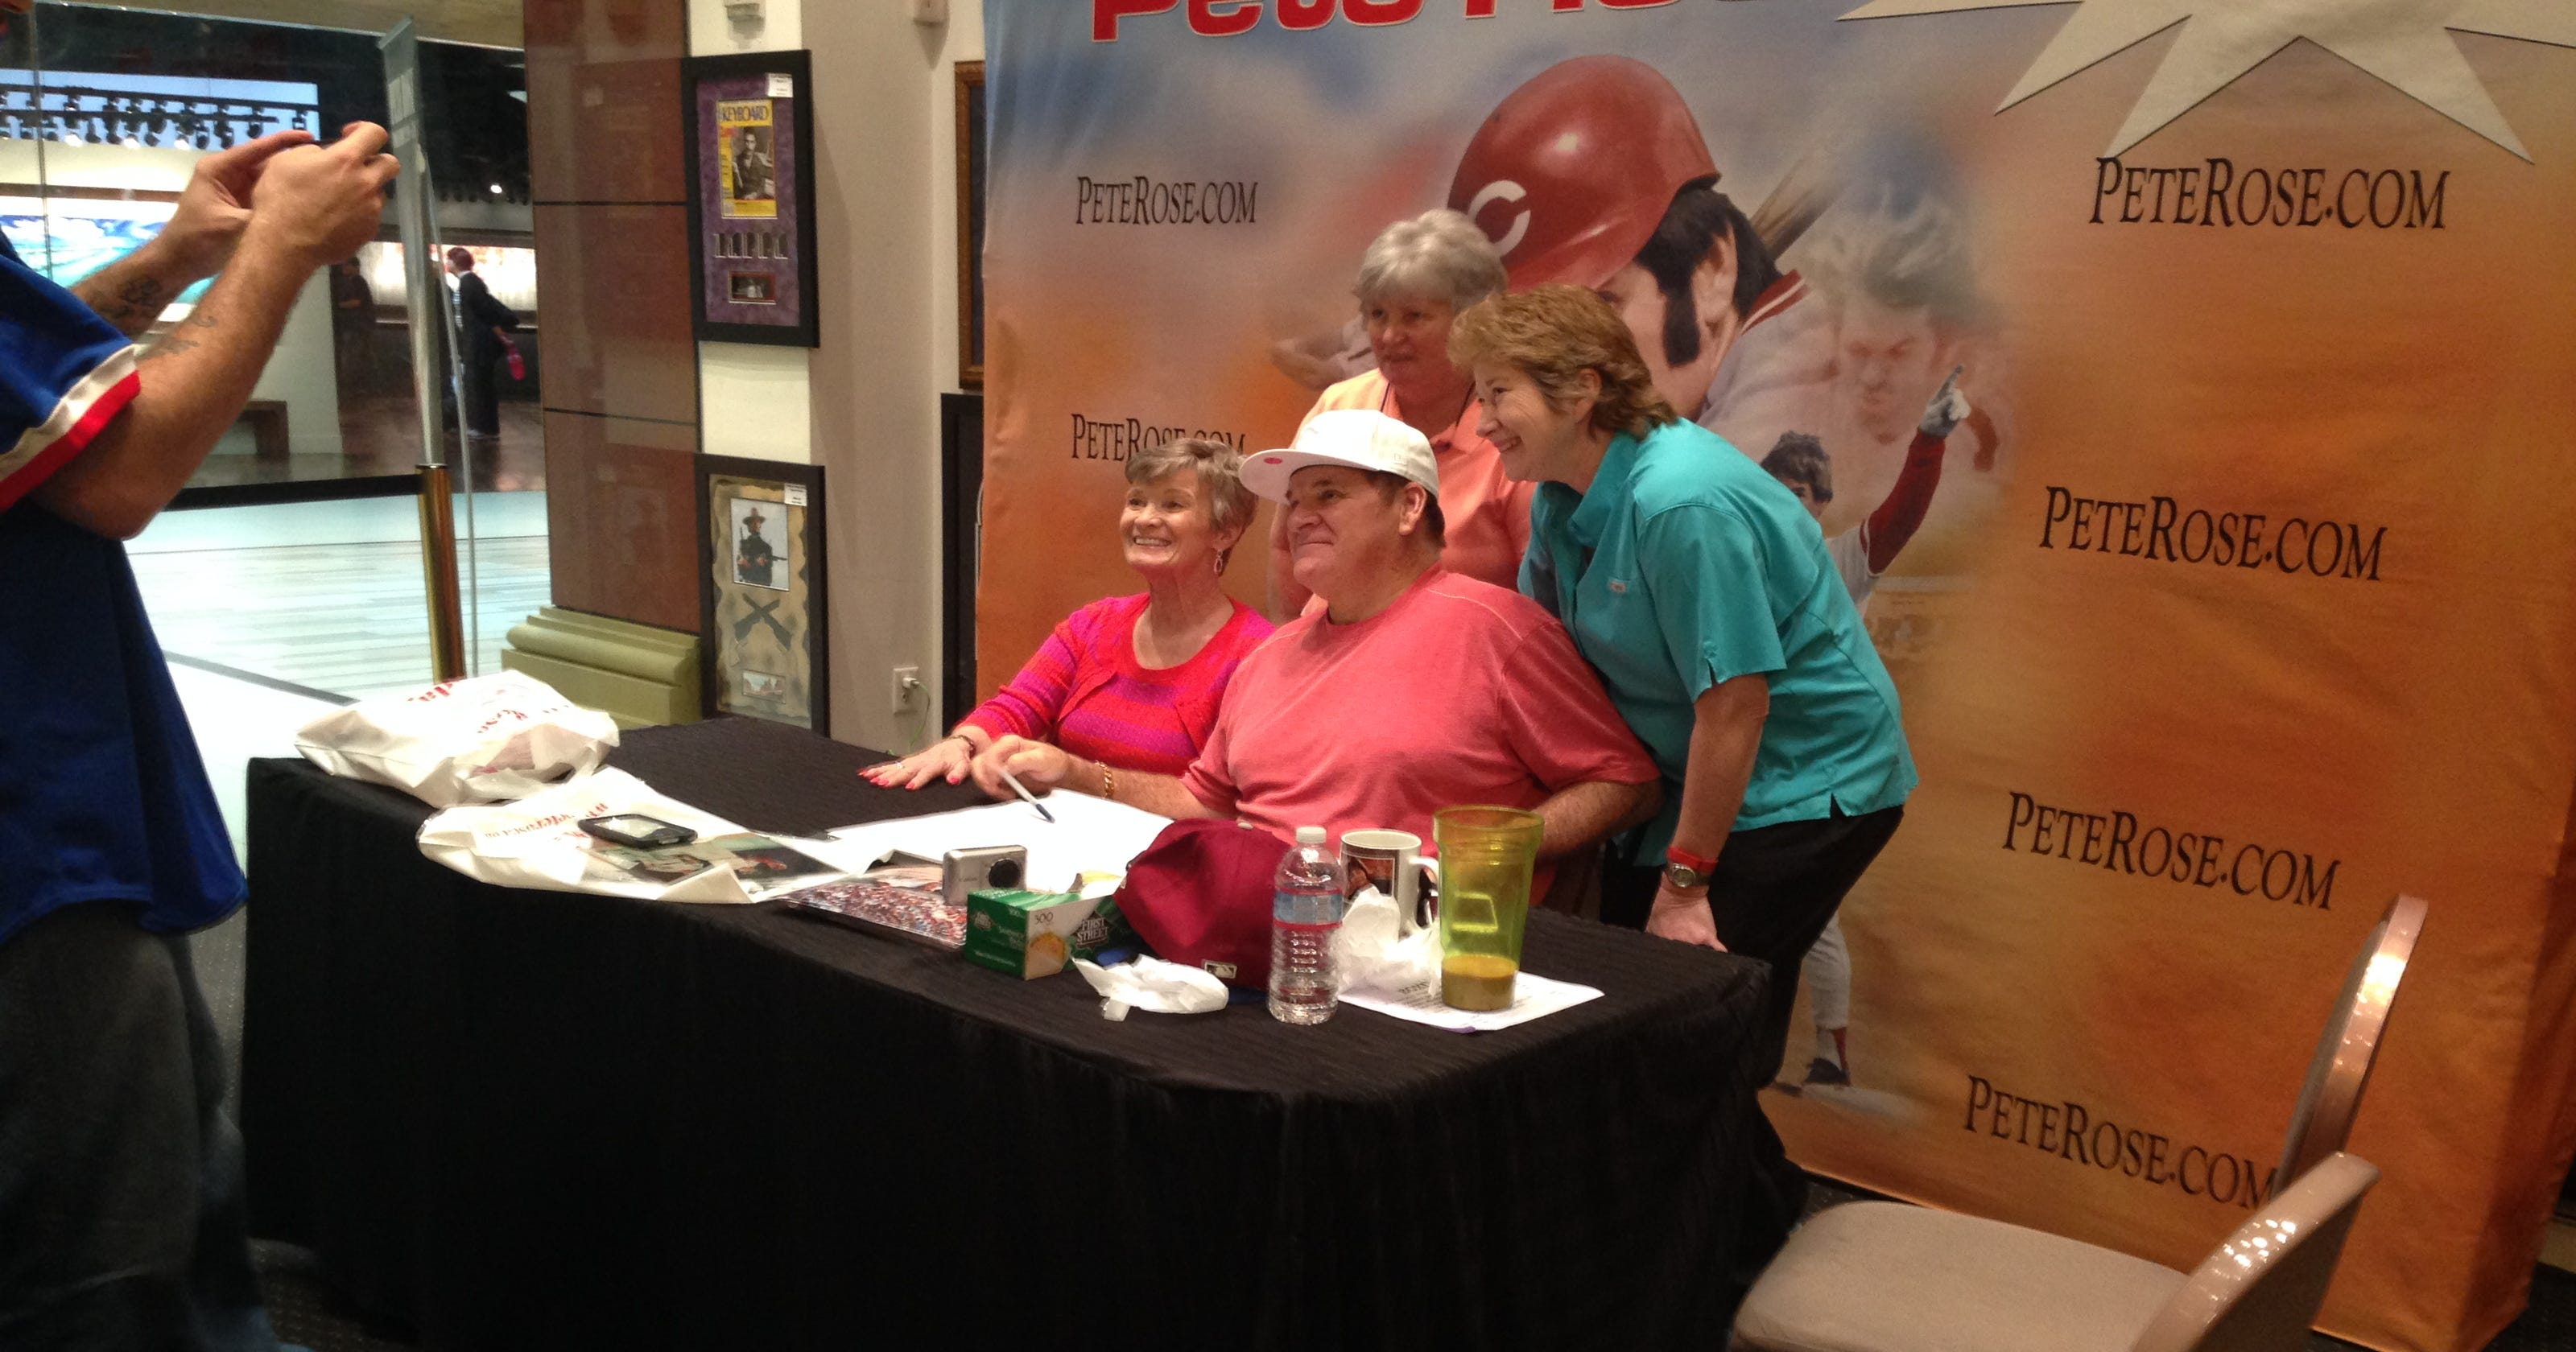 Pete Rose The King Of Hits Keeps Hustling